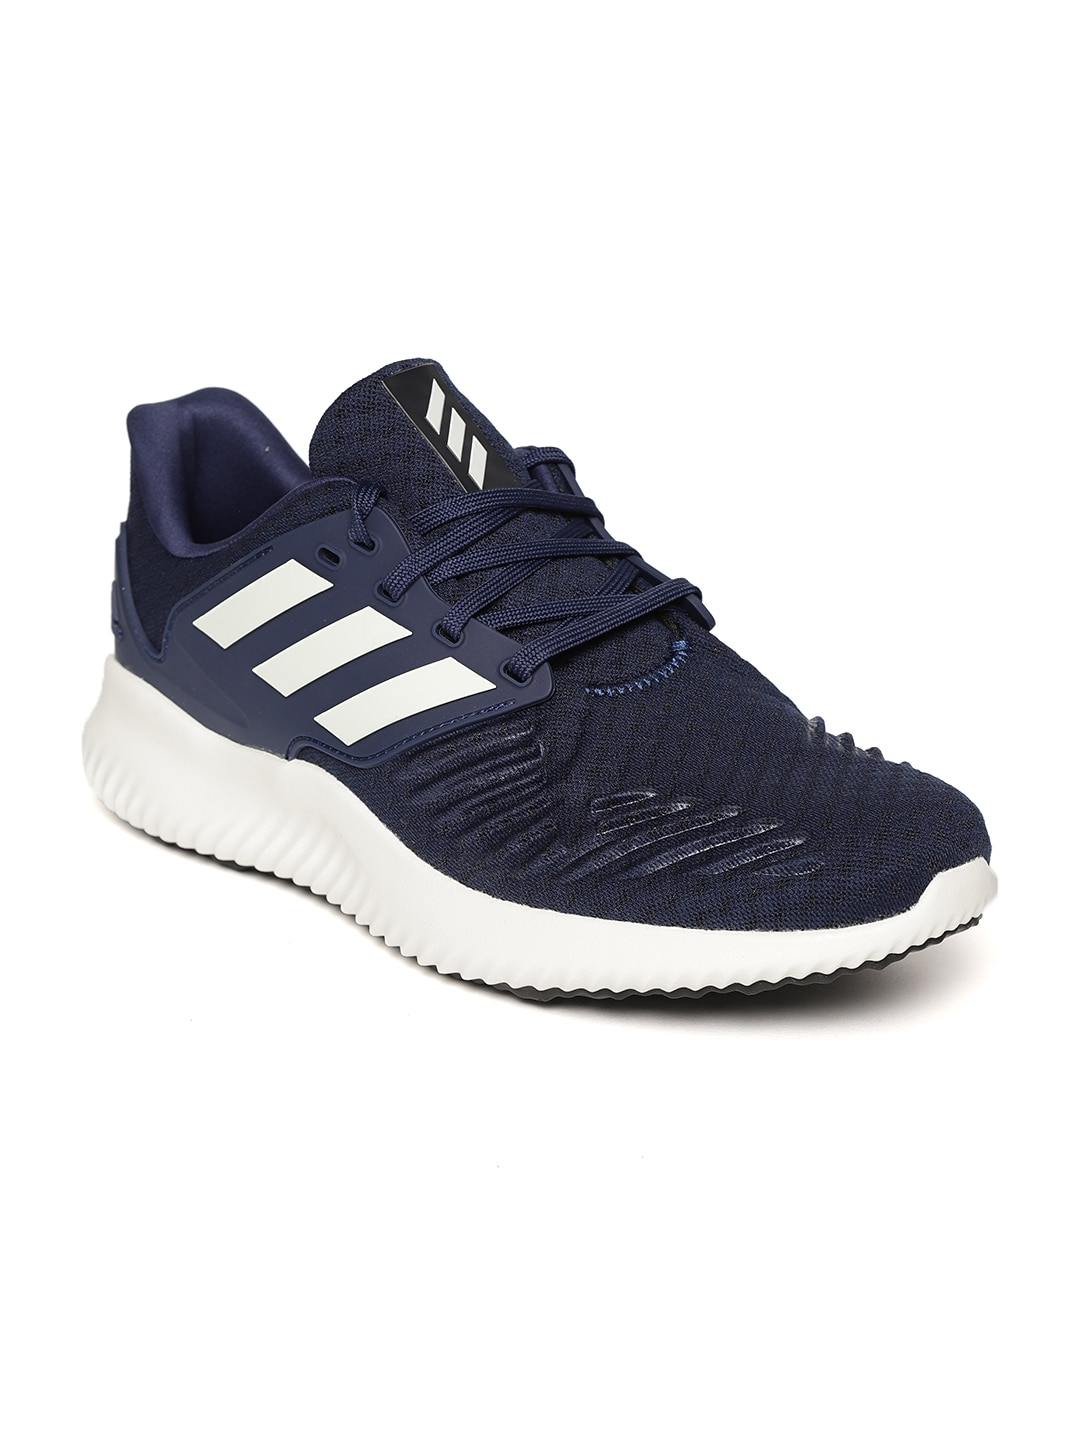 3590dd3090d19 Adidas Sports Shoes - Buy Addidas Sports Shoes Online